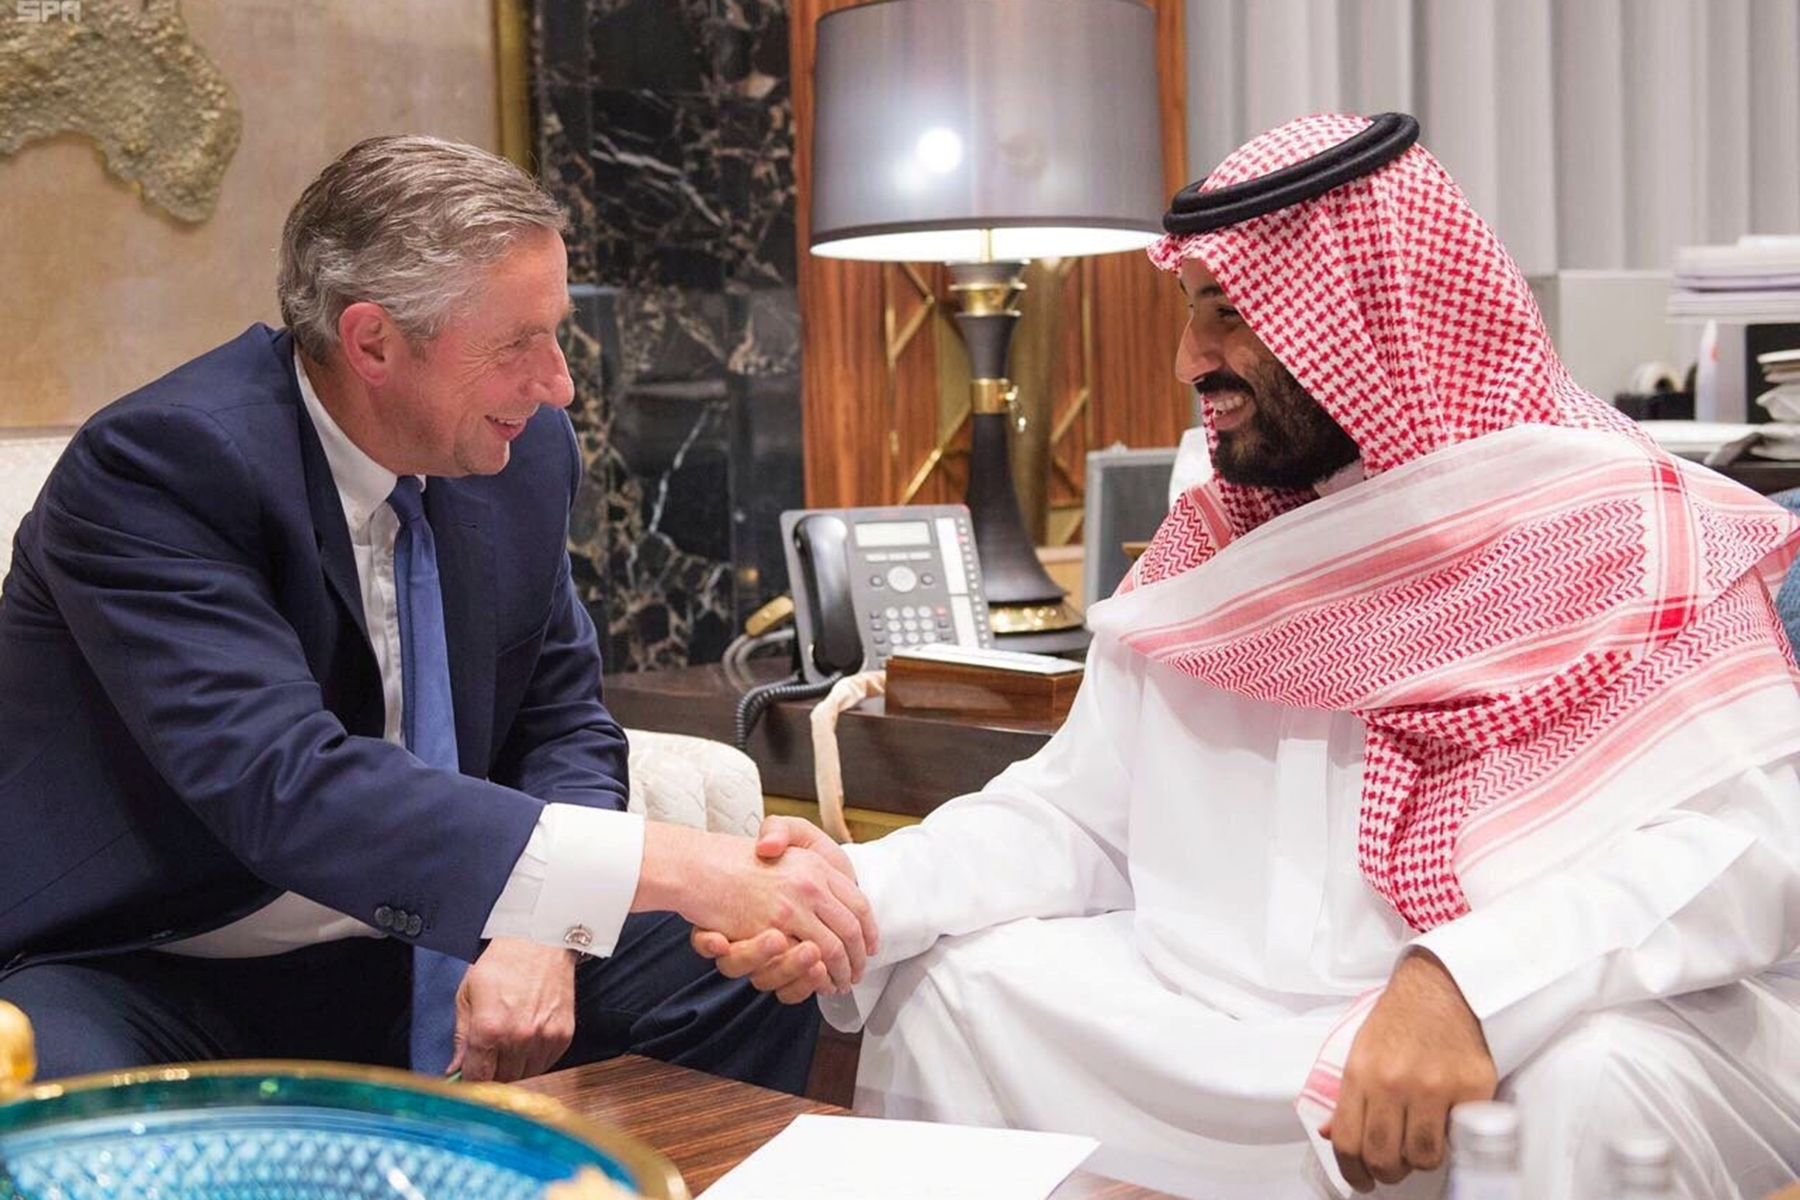 Saudi Crown Prince Mohammed bin Salman shakes hands with Klaus Kleinfeld after Kleinfeld was appointed as NEOM's Chief Executive Officer, in Riyadh